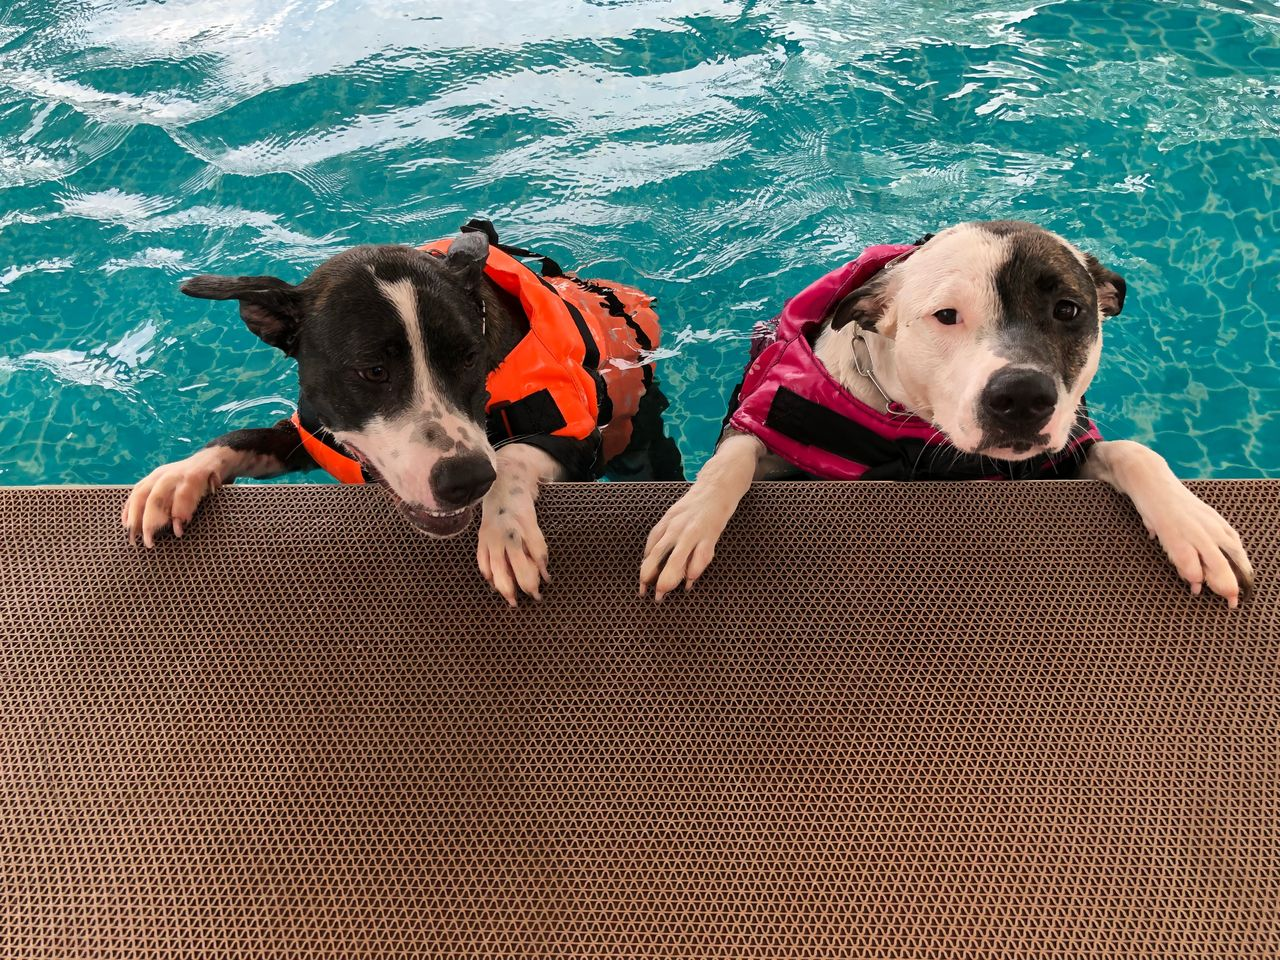 animal themes, dog, mammal, canine, animal, domestic, pets, domestic animals, one animal, vertebrate, water, portrait, looking at camera, no people, collar, day, nature, sea, swimming pool, weimaraner